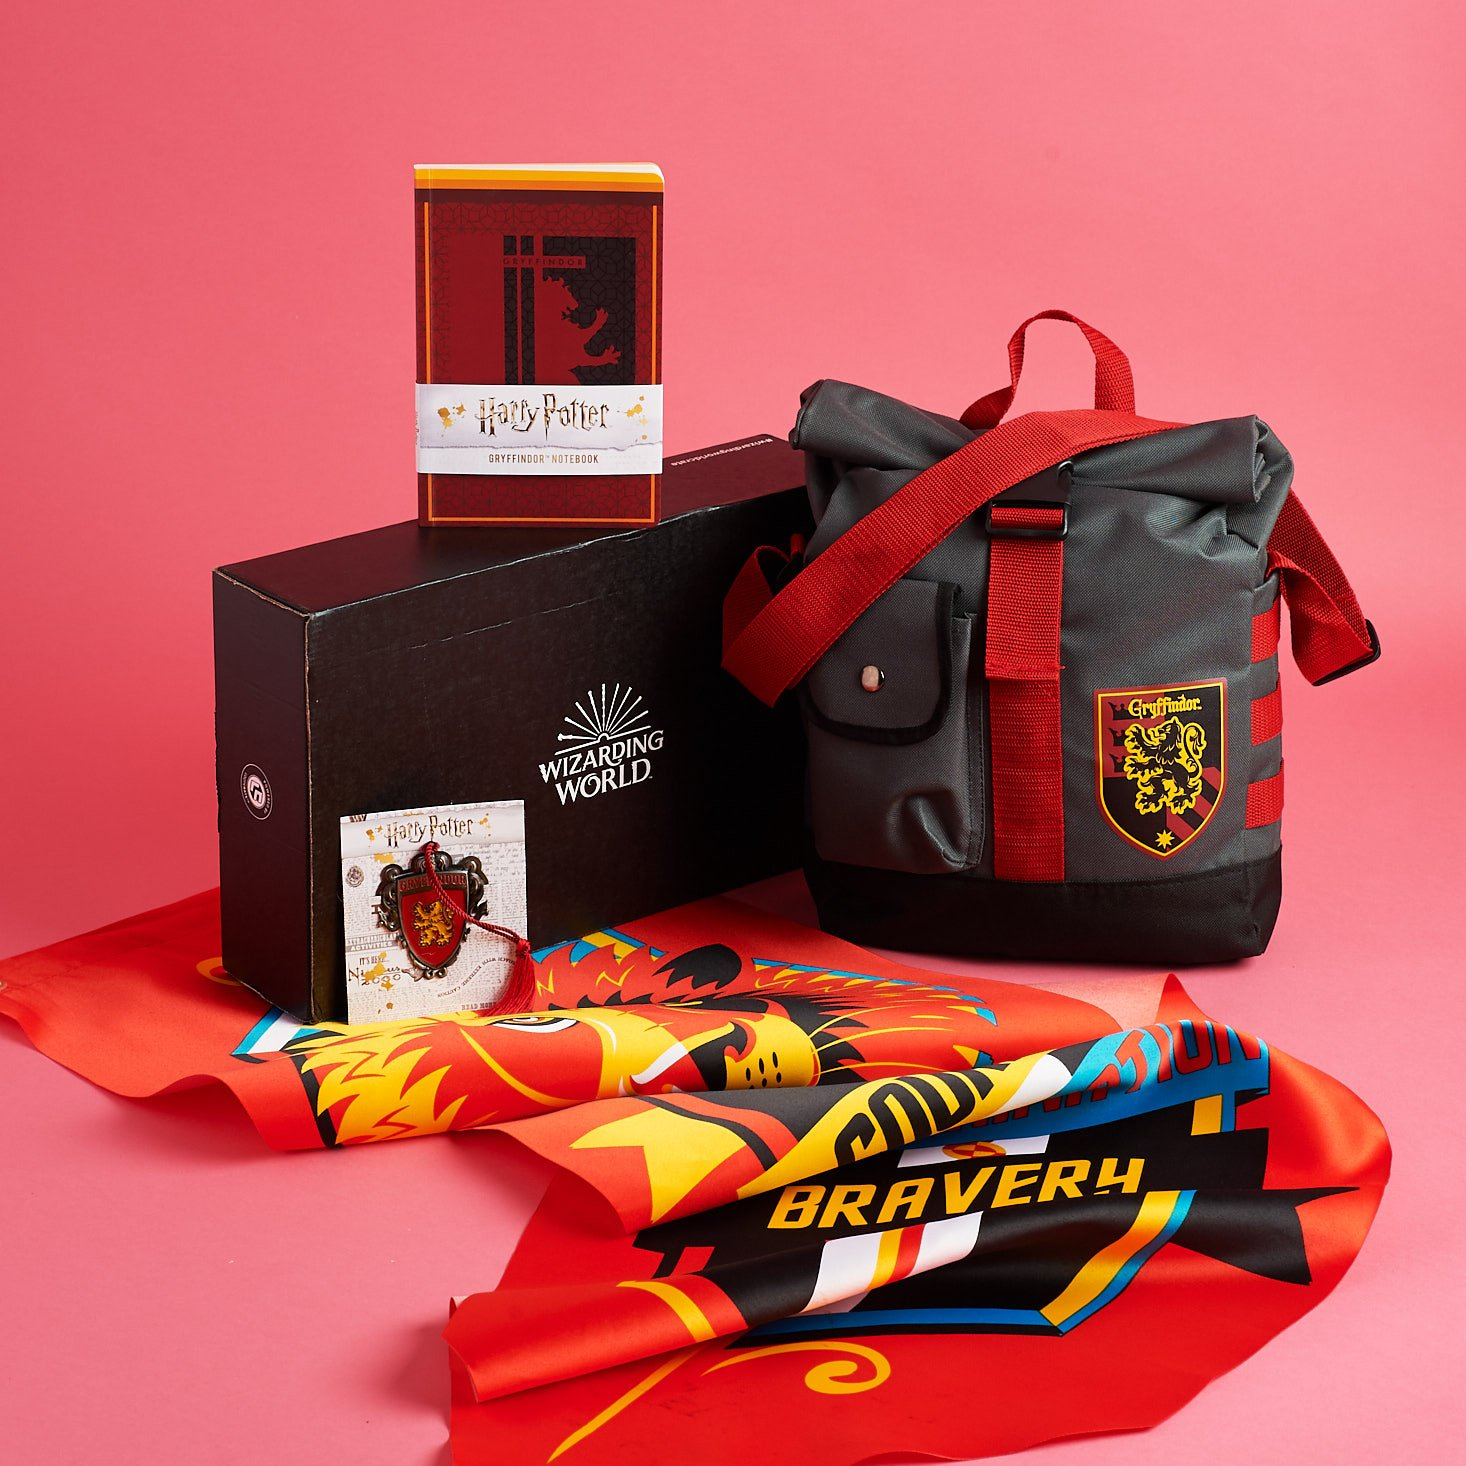 Harry Potter Wizarding World Subscription Box – Black Friday 50% Off Sale!